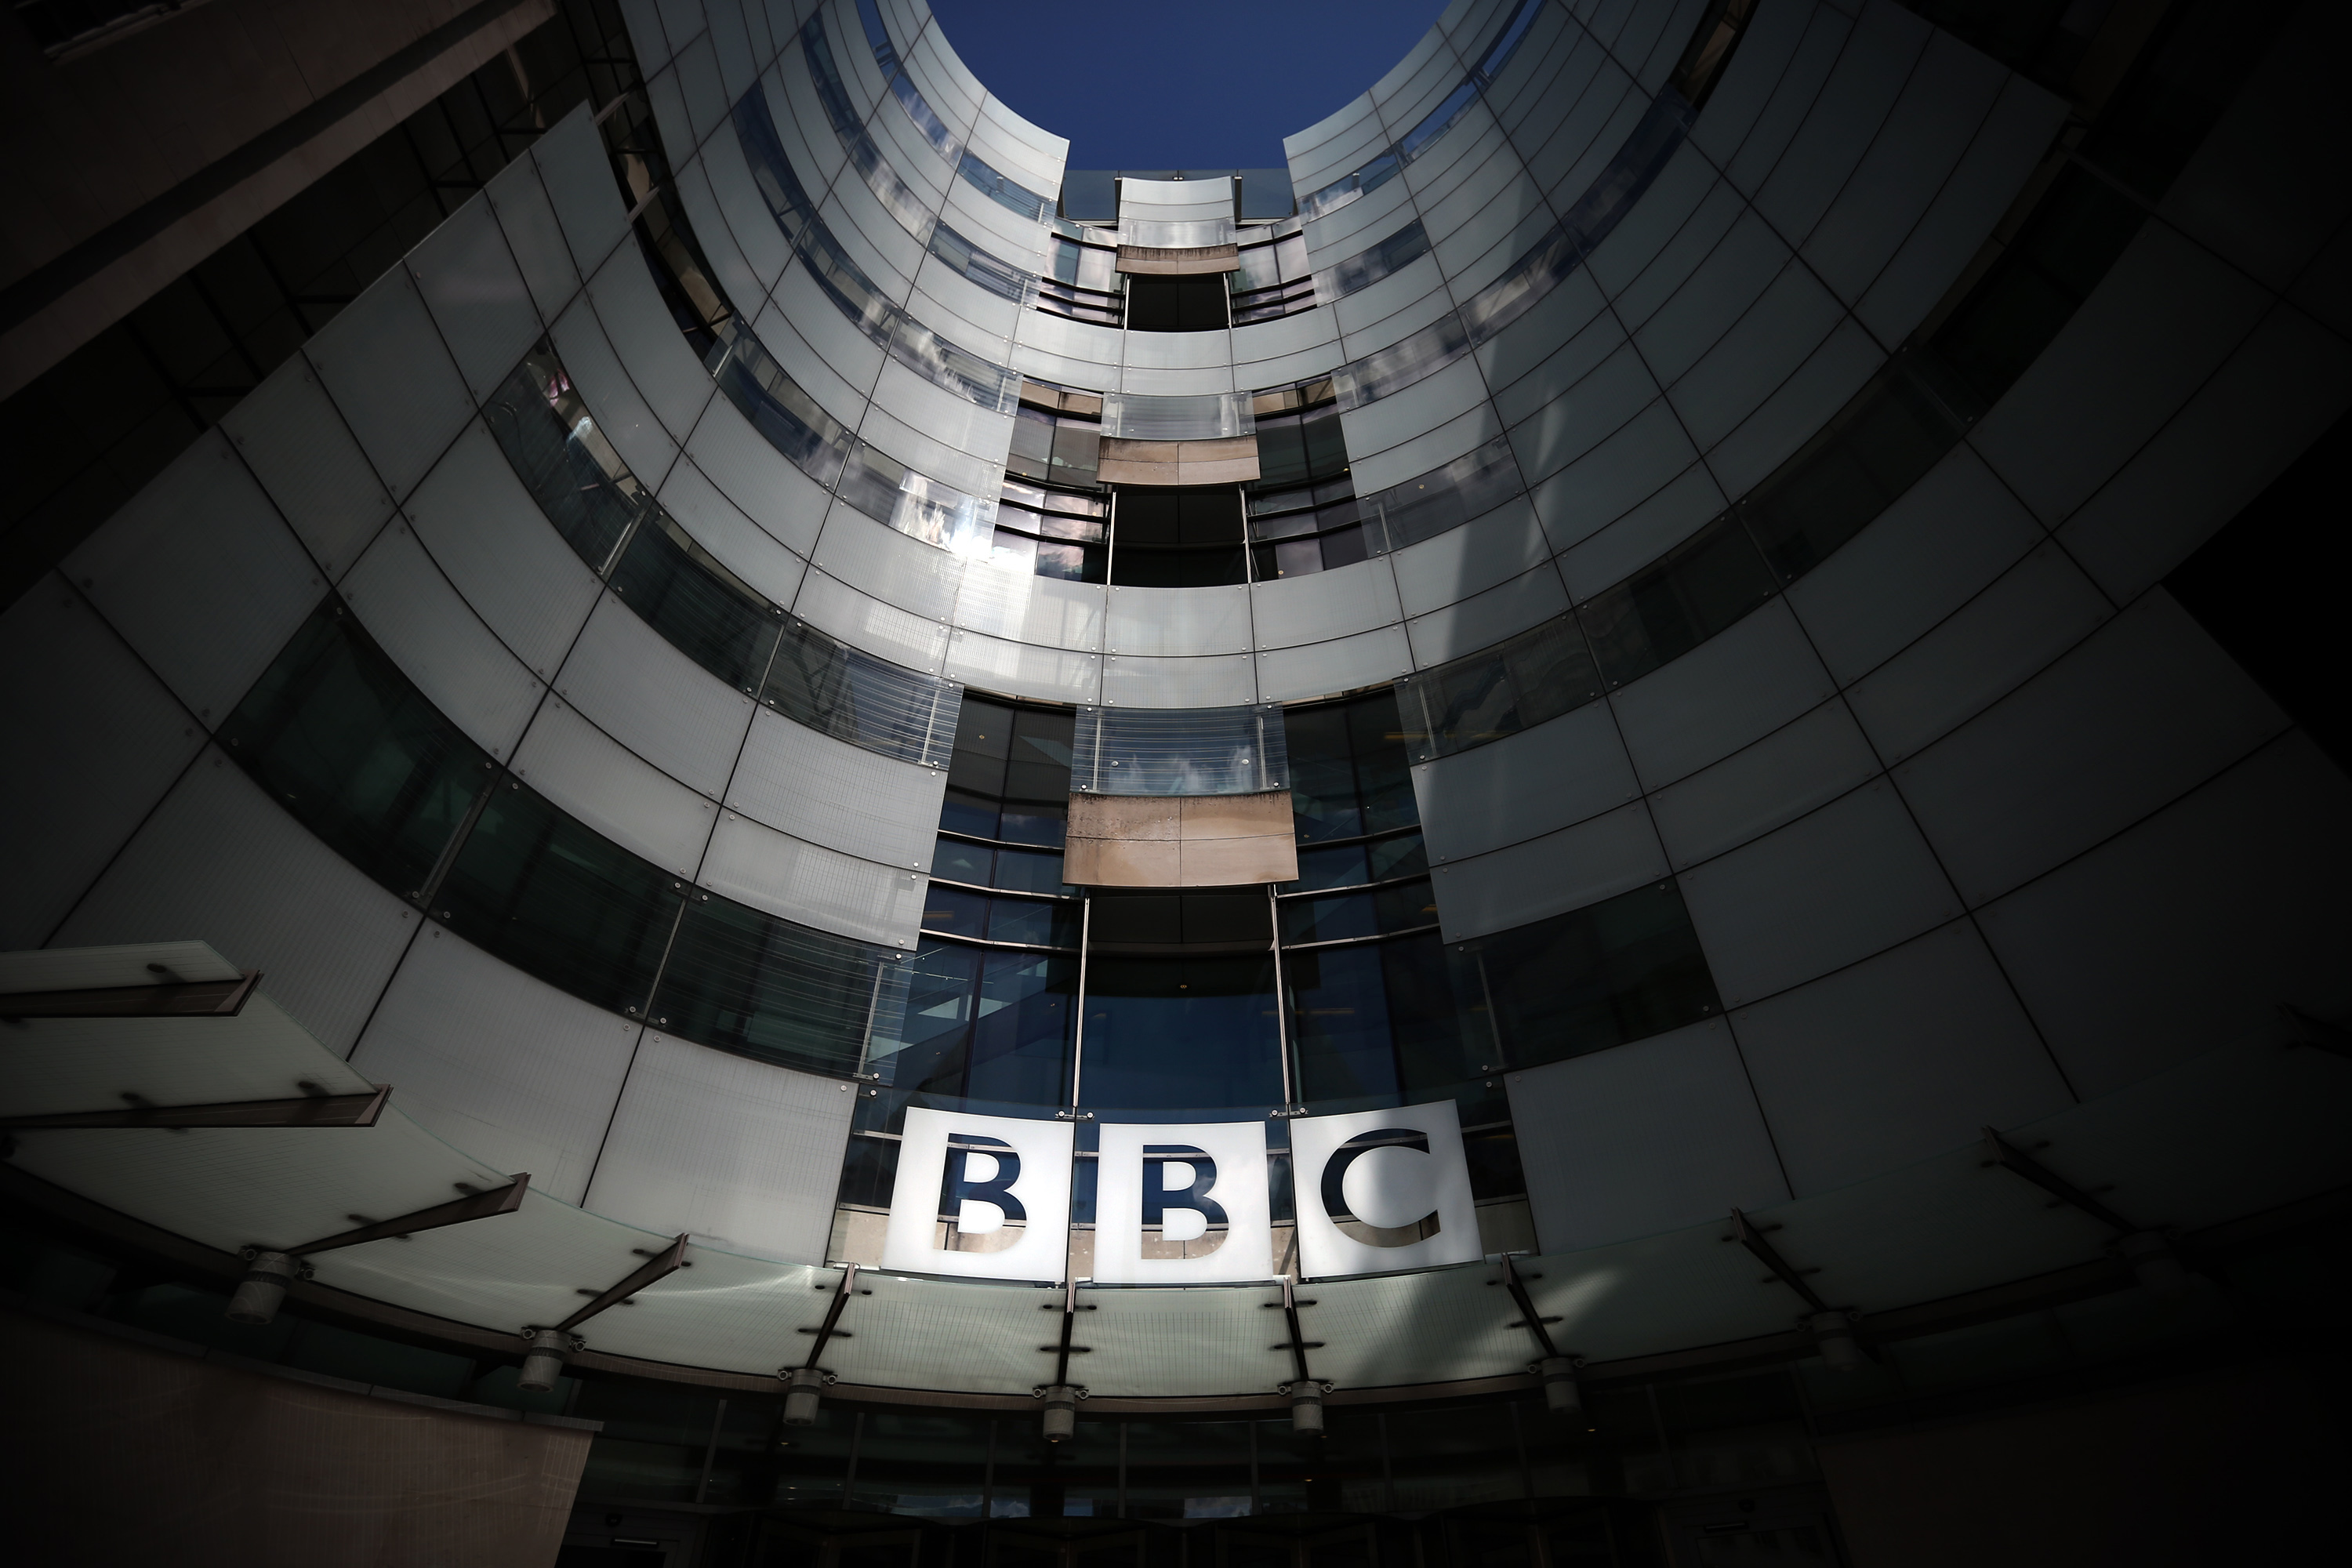 The logo for the Broadcasting House, the headquarters of the BBC, is displayed outside on July 25, 2015 in London.